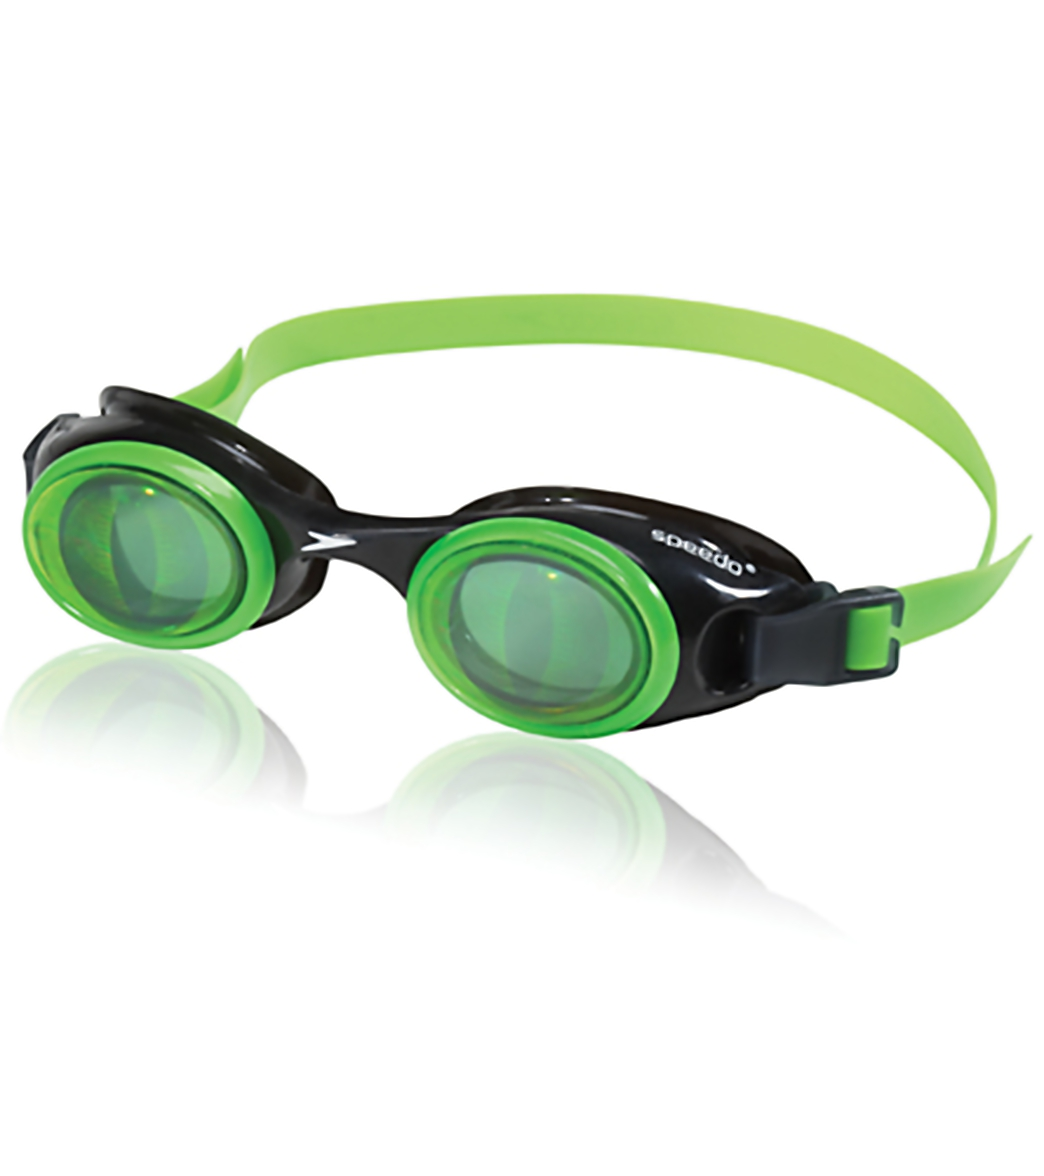 Speedo Holowonders Monster Goggle At Swimoutlet Com